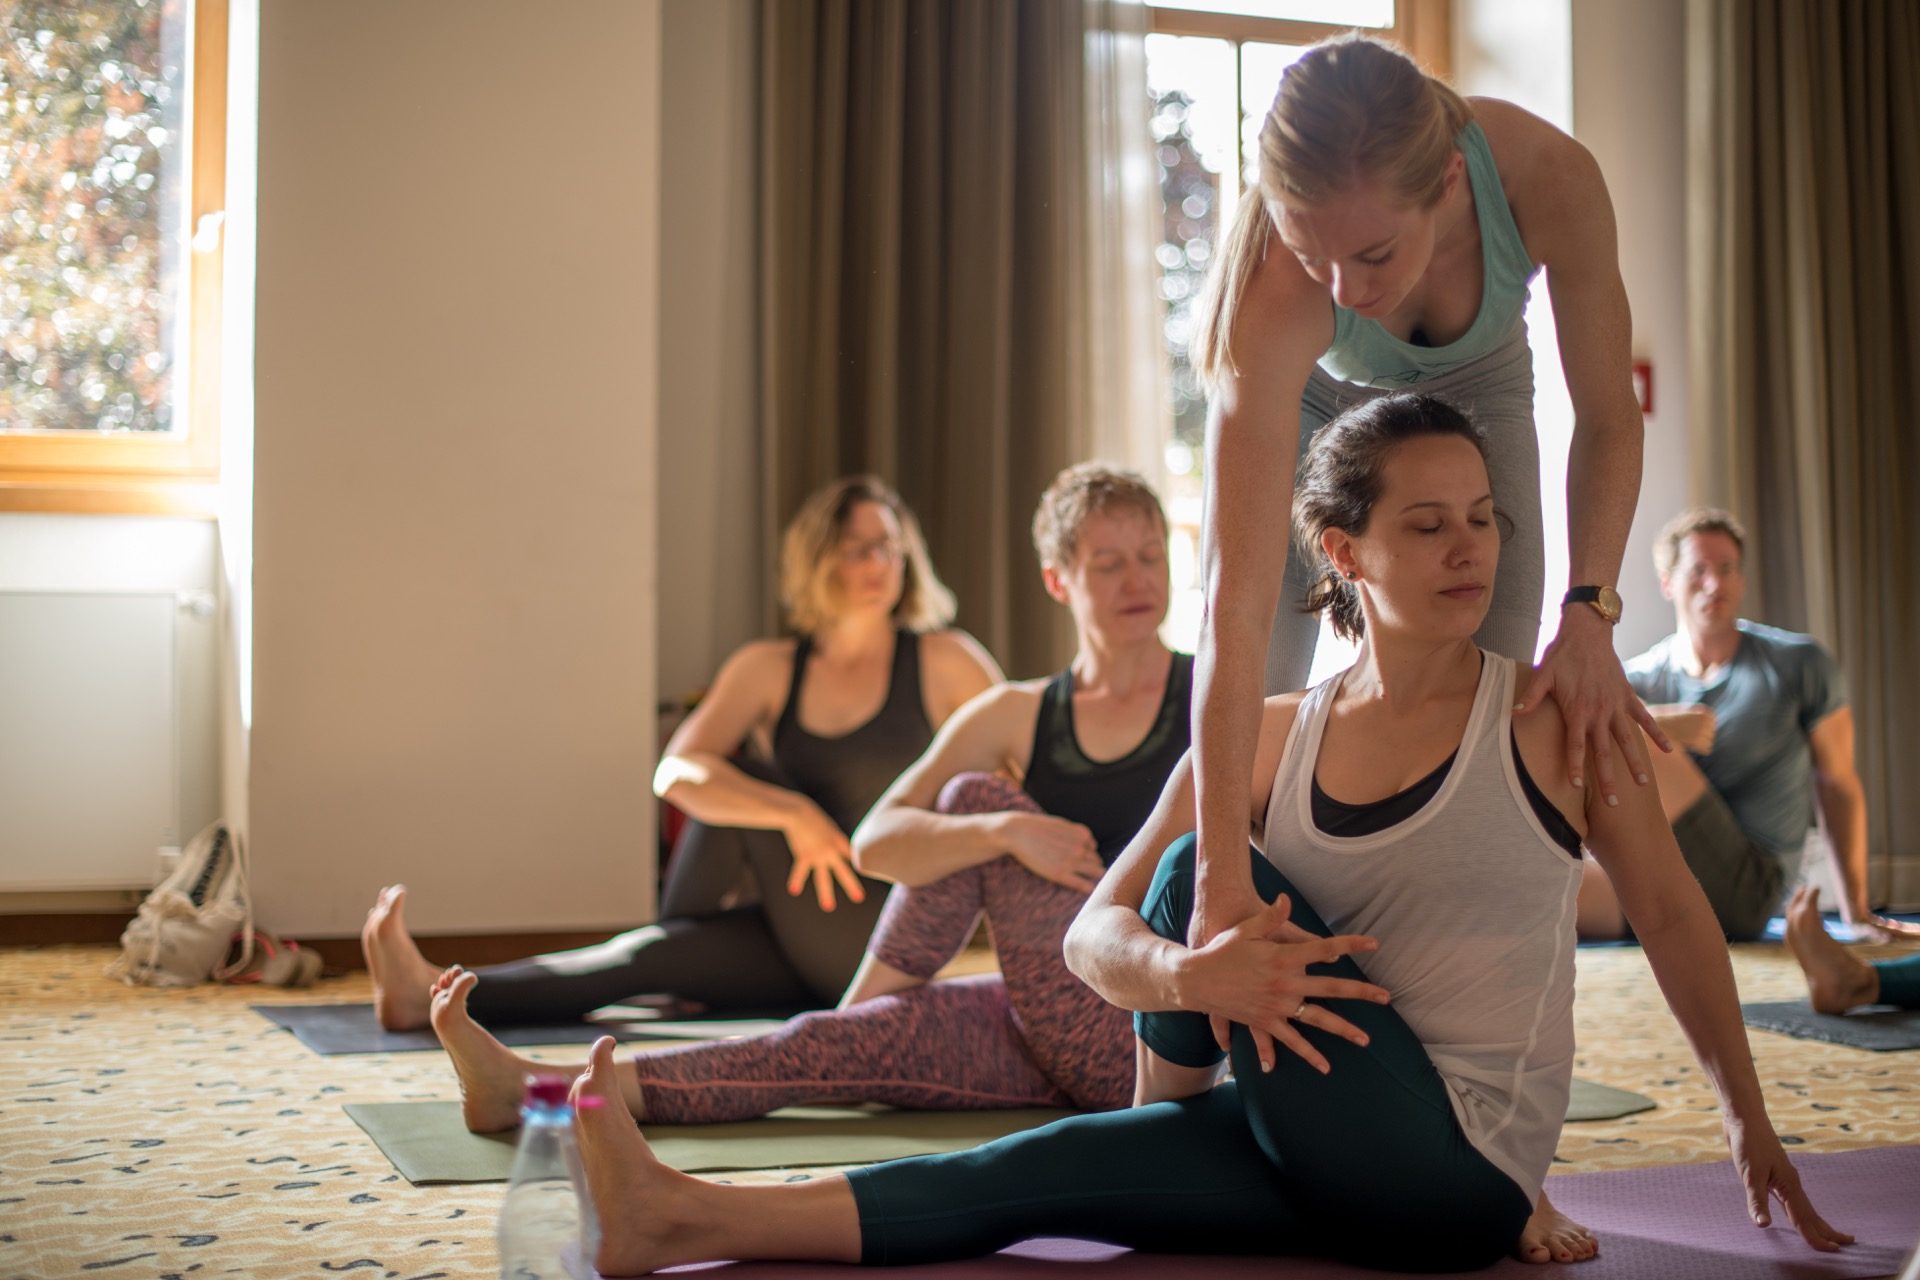 Hie-Kim-Friends-2019-Yoga-Retreat-Alina-Matis-Photography-108 - Hie Kim Yoga - Yoga Retreat - Yoga Workshops und Reisen